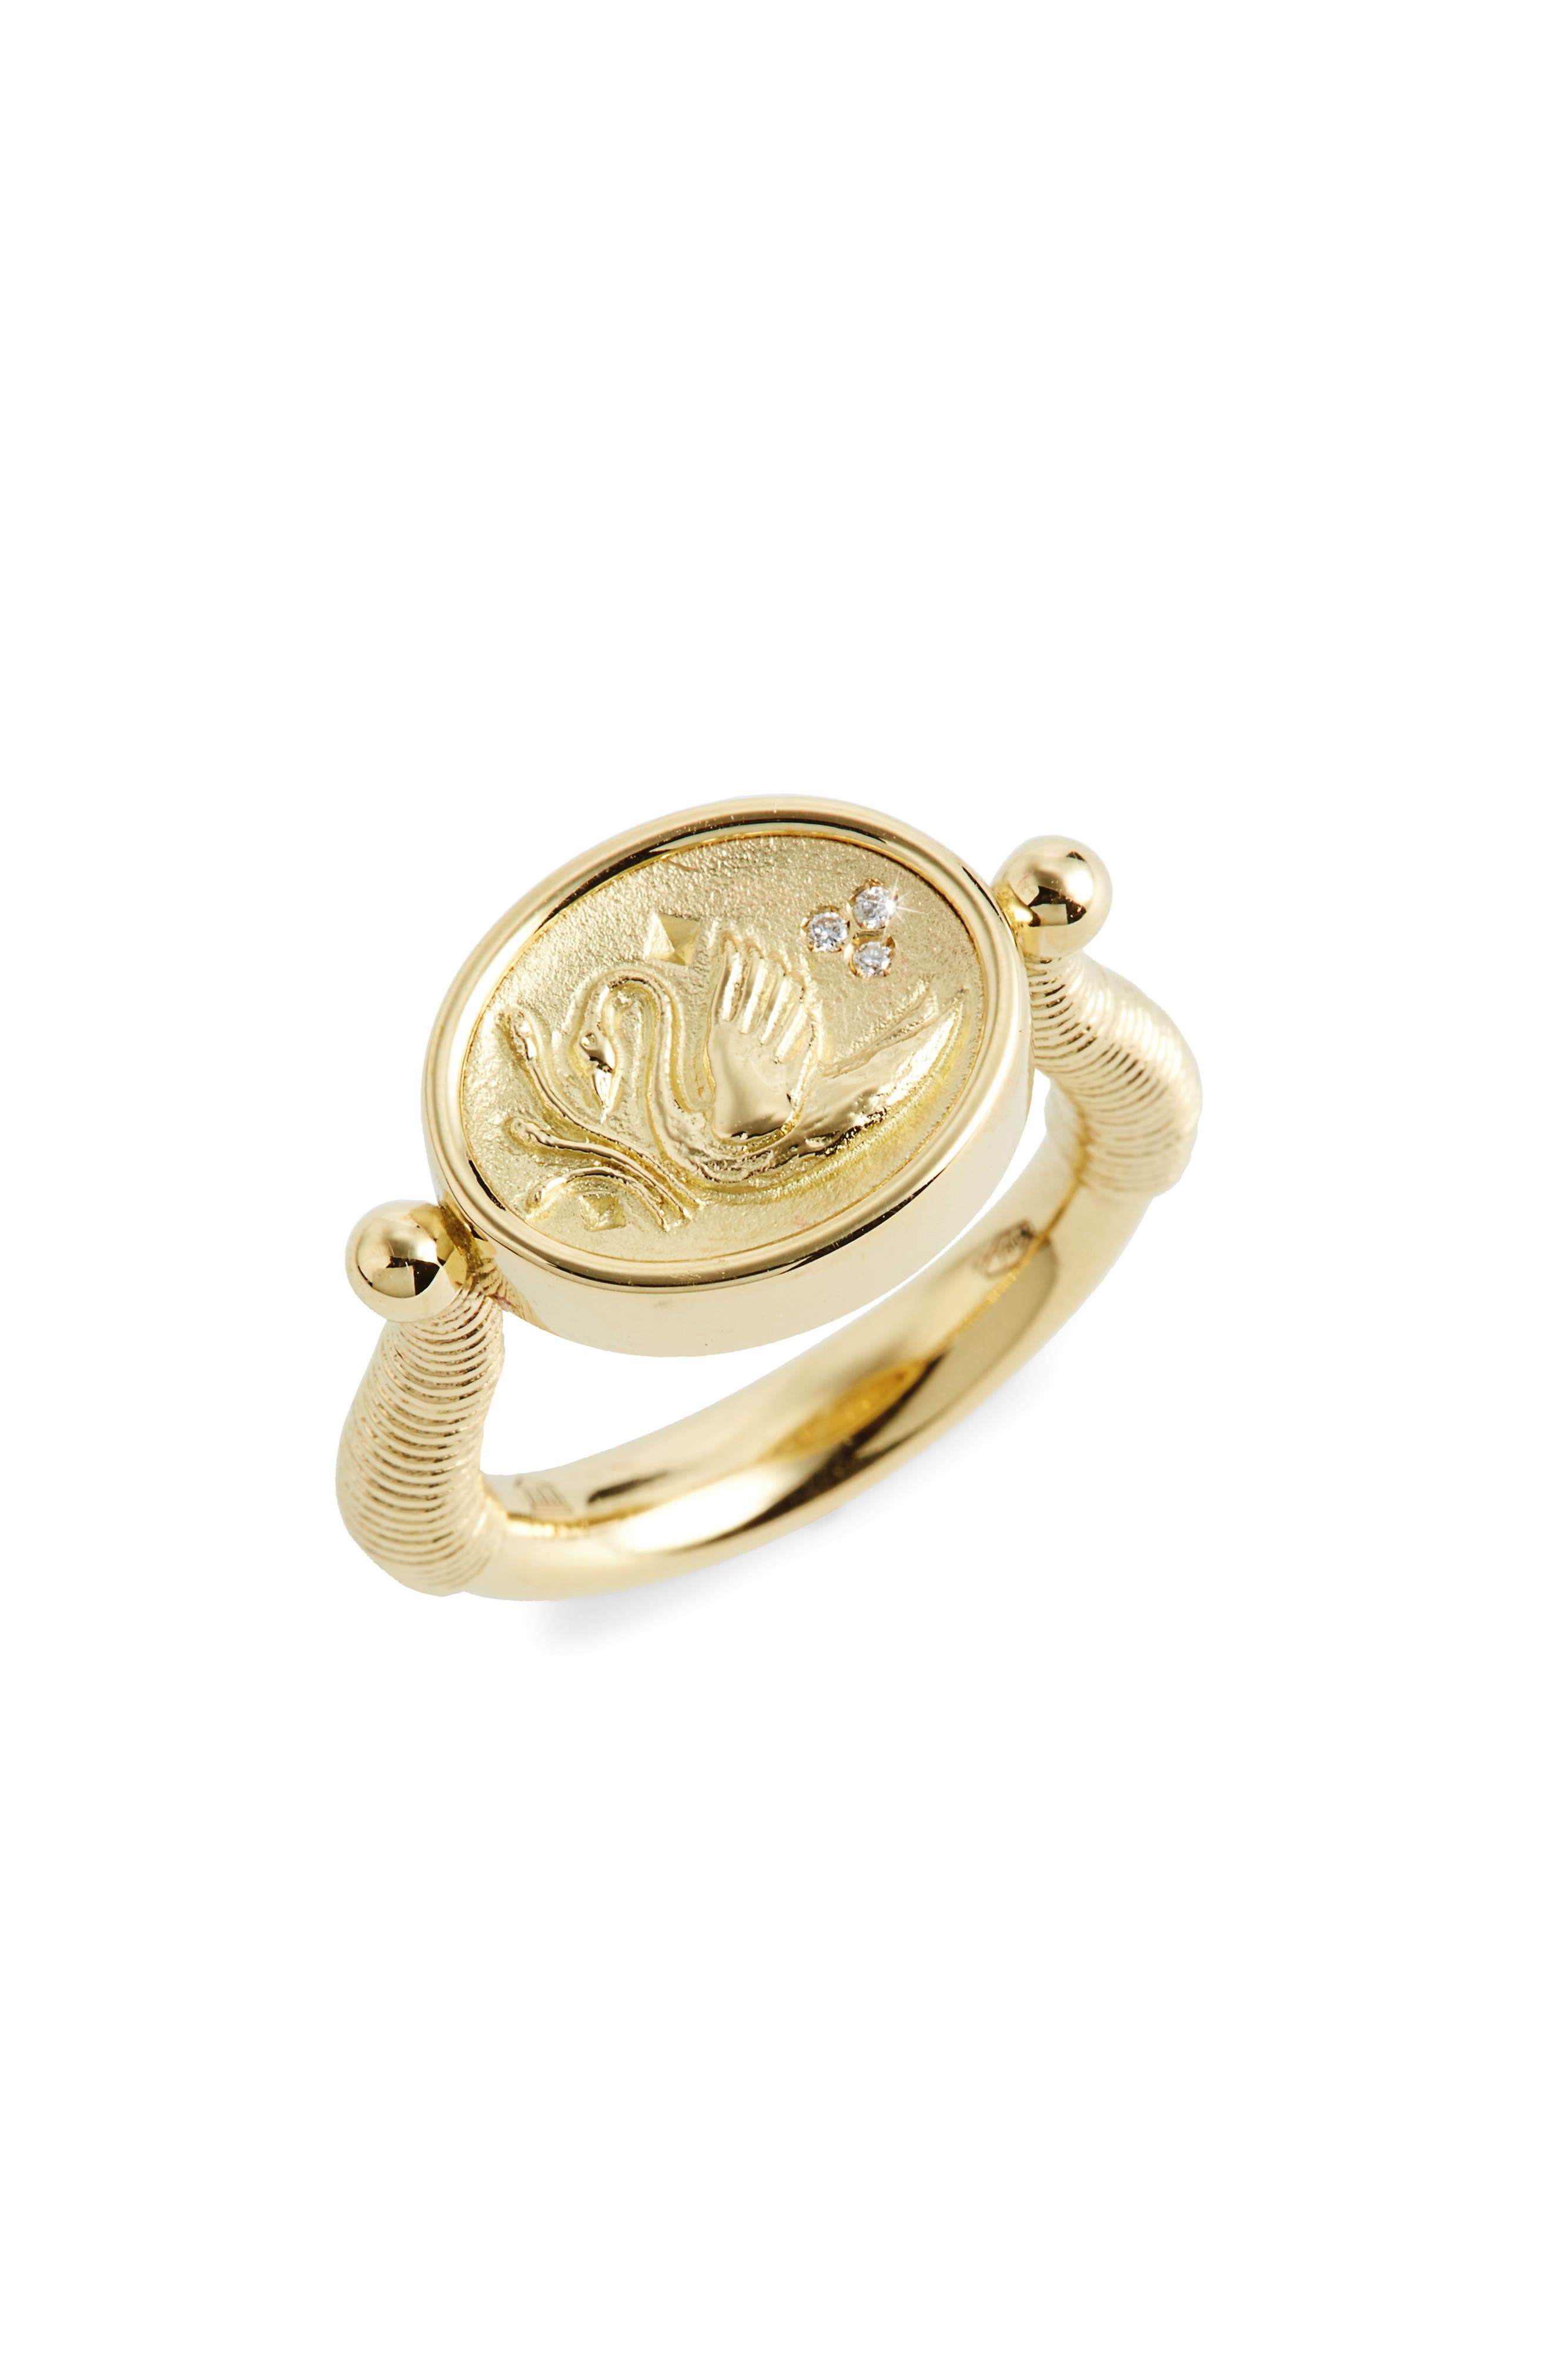 Temple St. Clair Object Trouvé Swan Coin Diamond Ring,                         Main,                         color,